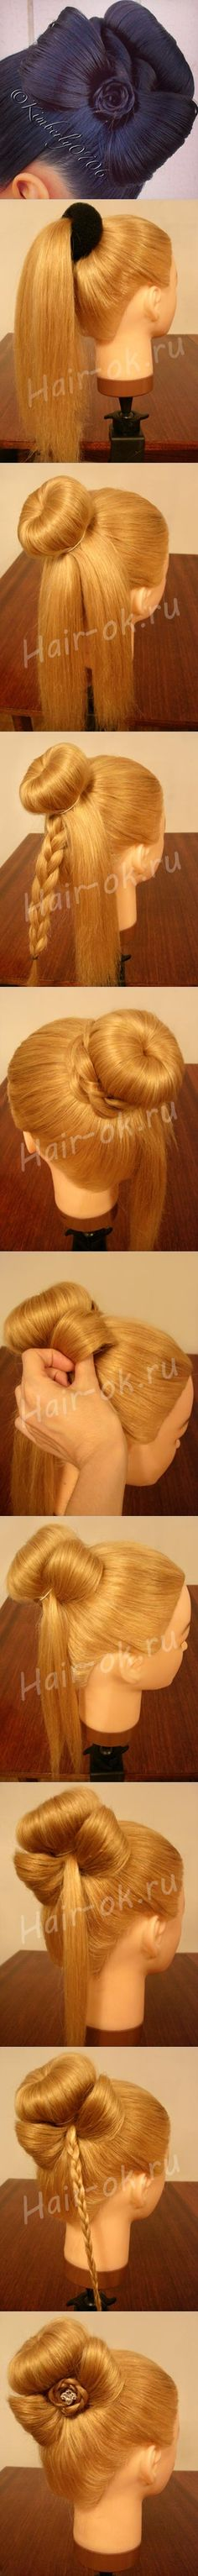 DIY Braided Bow Hairstyle | www.FabArtDIY.com LIKE Us on Facebook ==> https://www.facebook.com/FabArtDIY